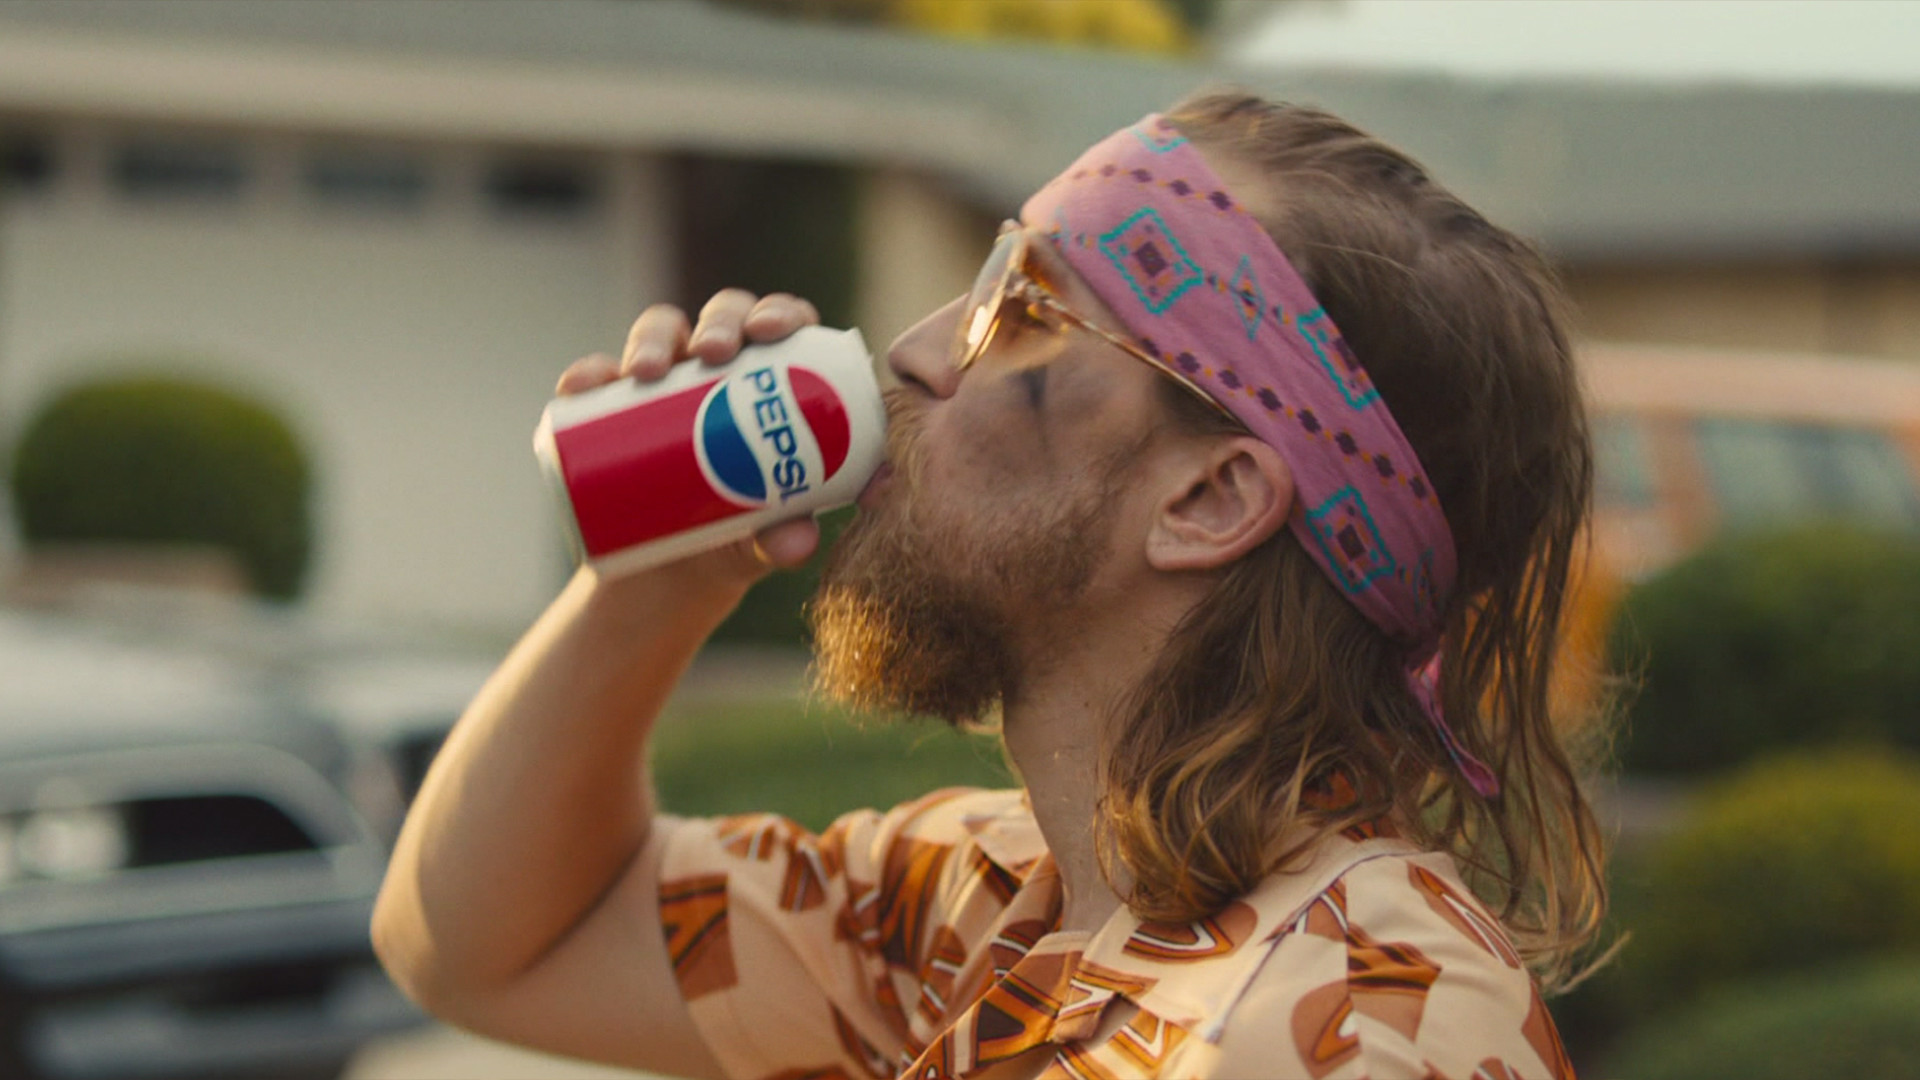 Super Bowl: Pepsi is the drink for every generation | NBC Sports